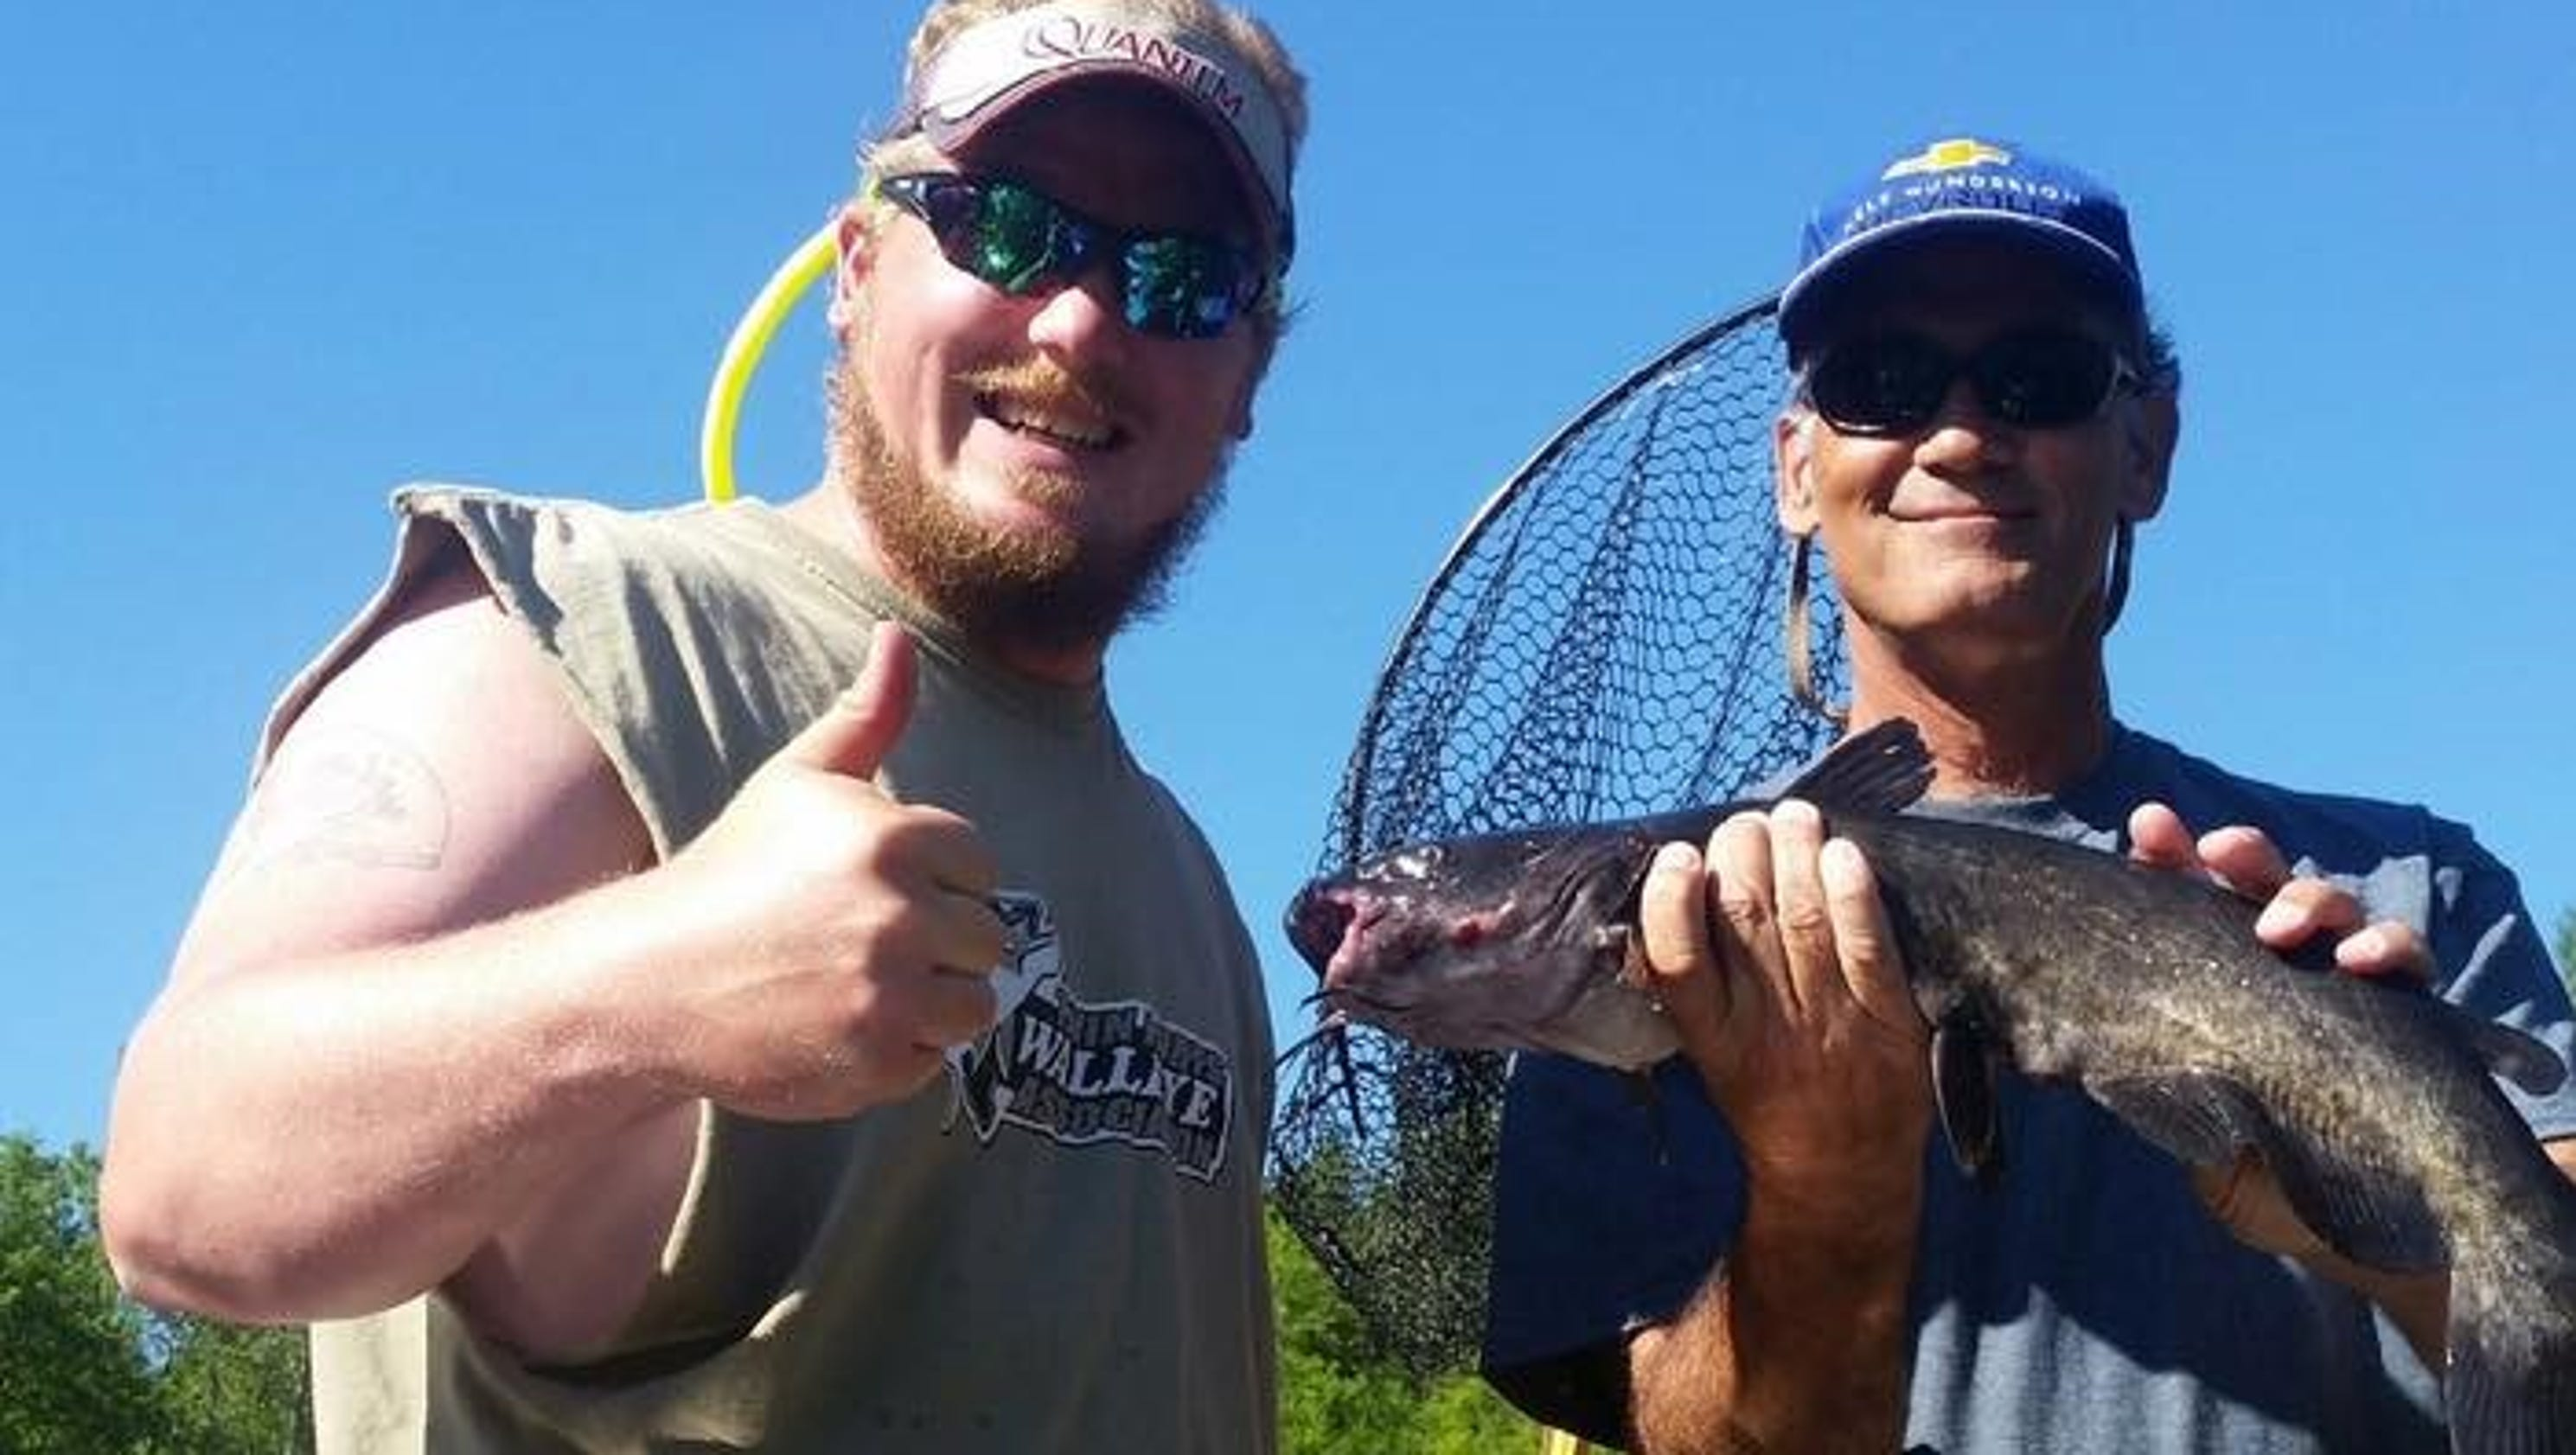 Northwest wisconsin fishing report for july 14 for Today s fishing forecast